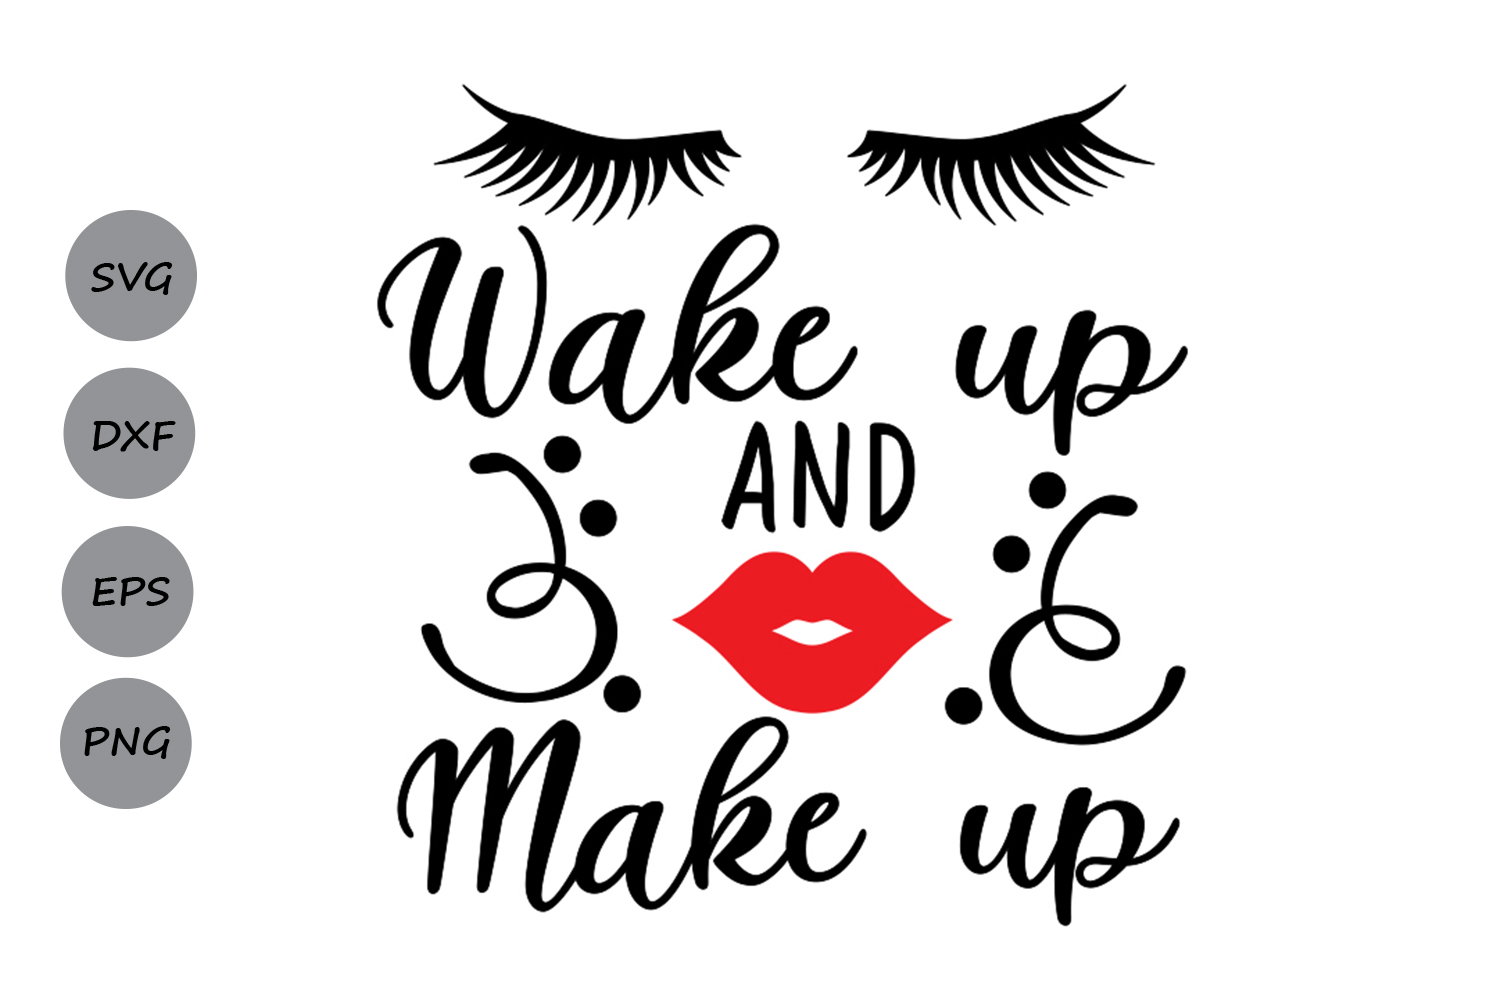 Download Free Wake Up And Make Up Svg Graphic By Cosmosfineart Creative Fabrica for Cricut Explore, Silhouette and other cutting machines.